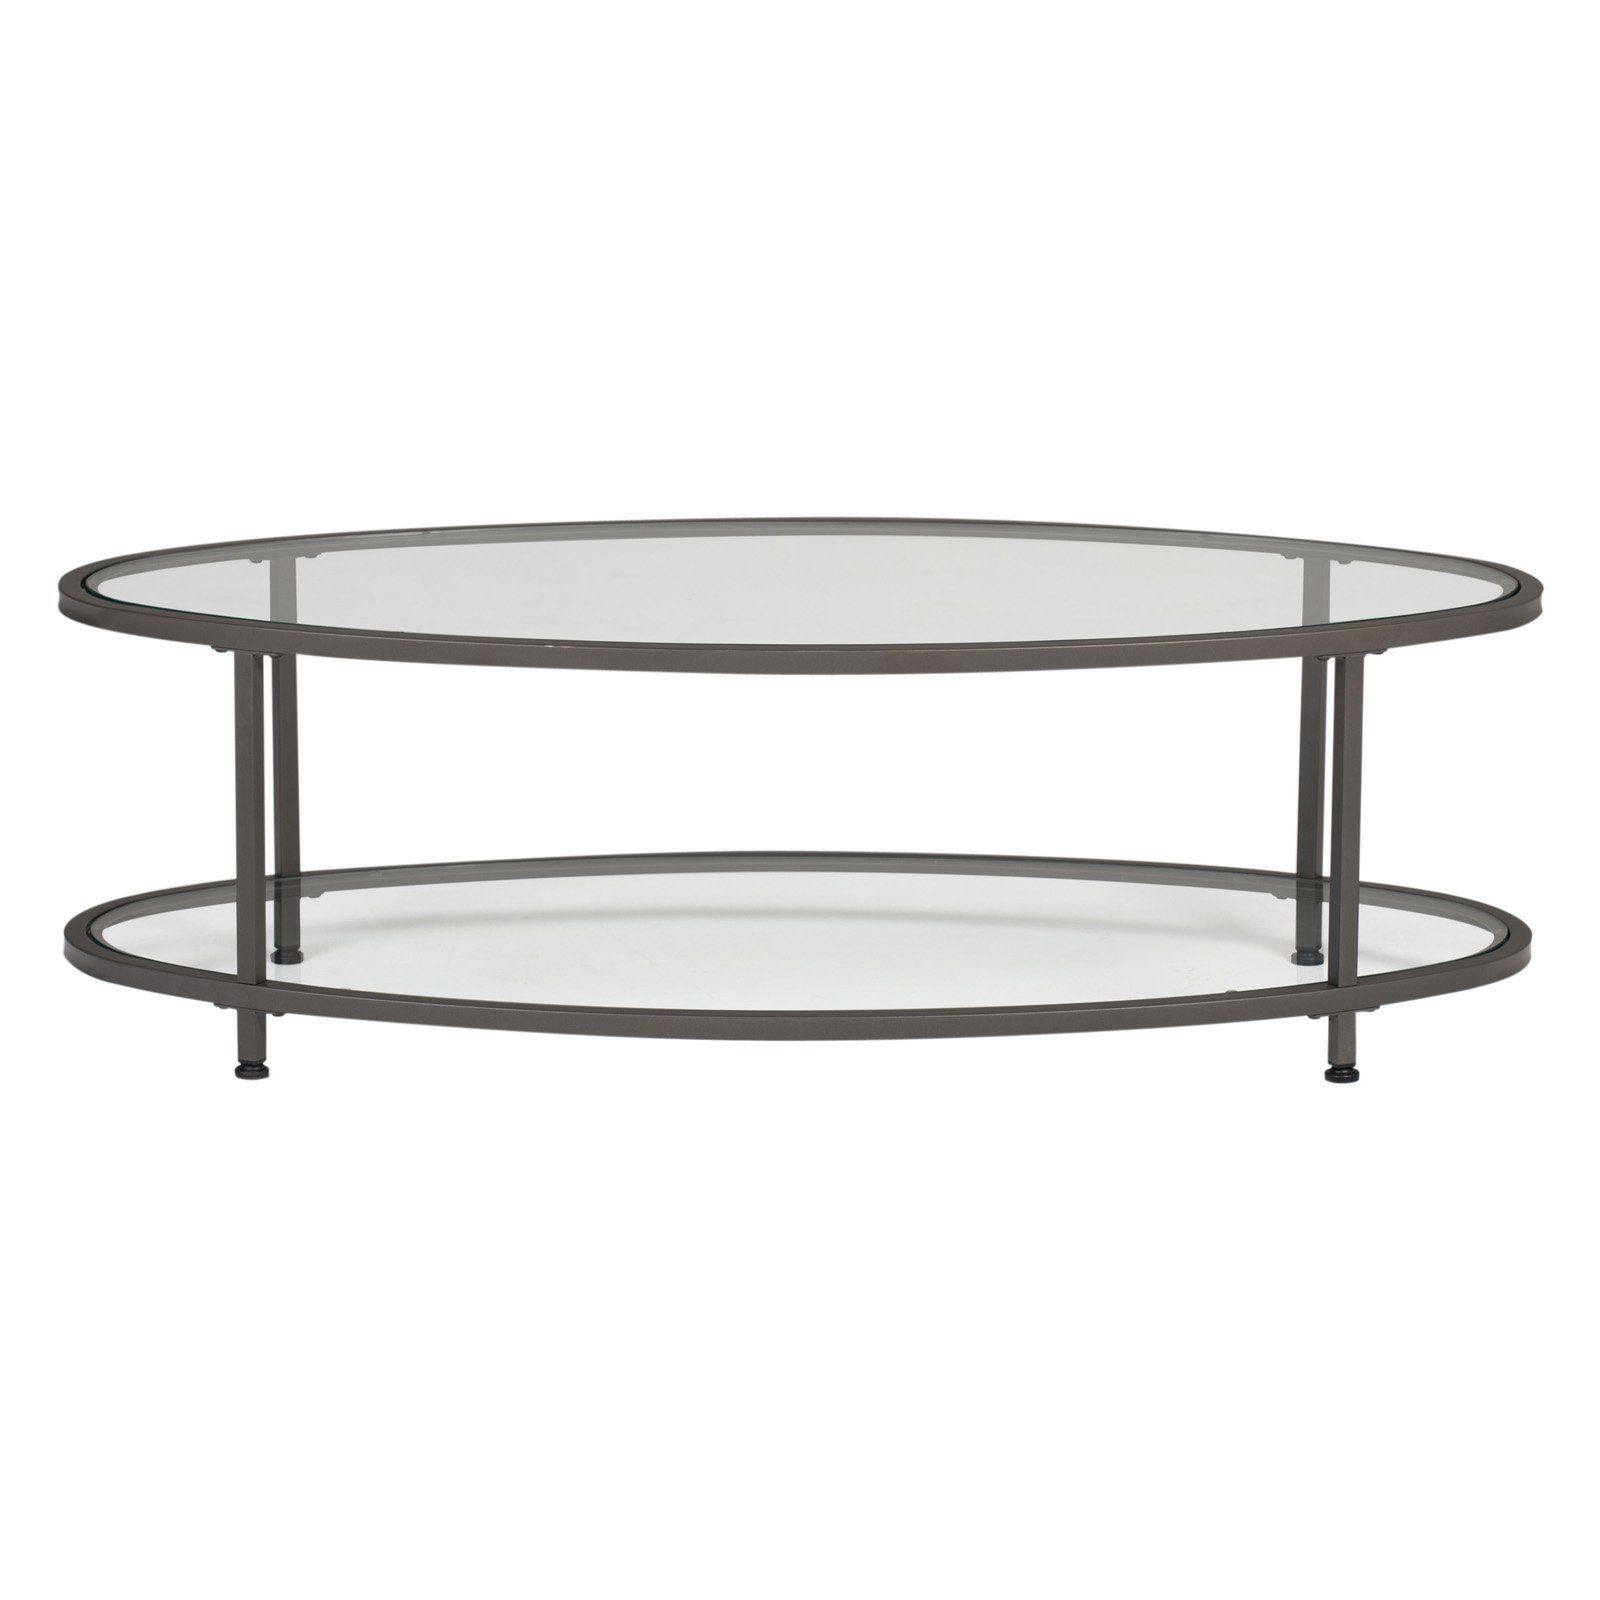 Studio Designs Home Camber 48 In Oval Coffee Table Oval Coffee Tables Coffee Table Oval Glass Coffee Table [ 1600 x 1600 Pixel ]